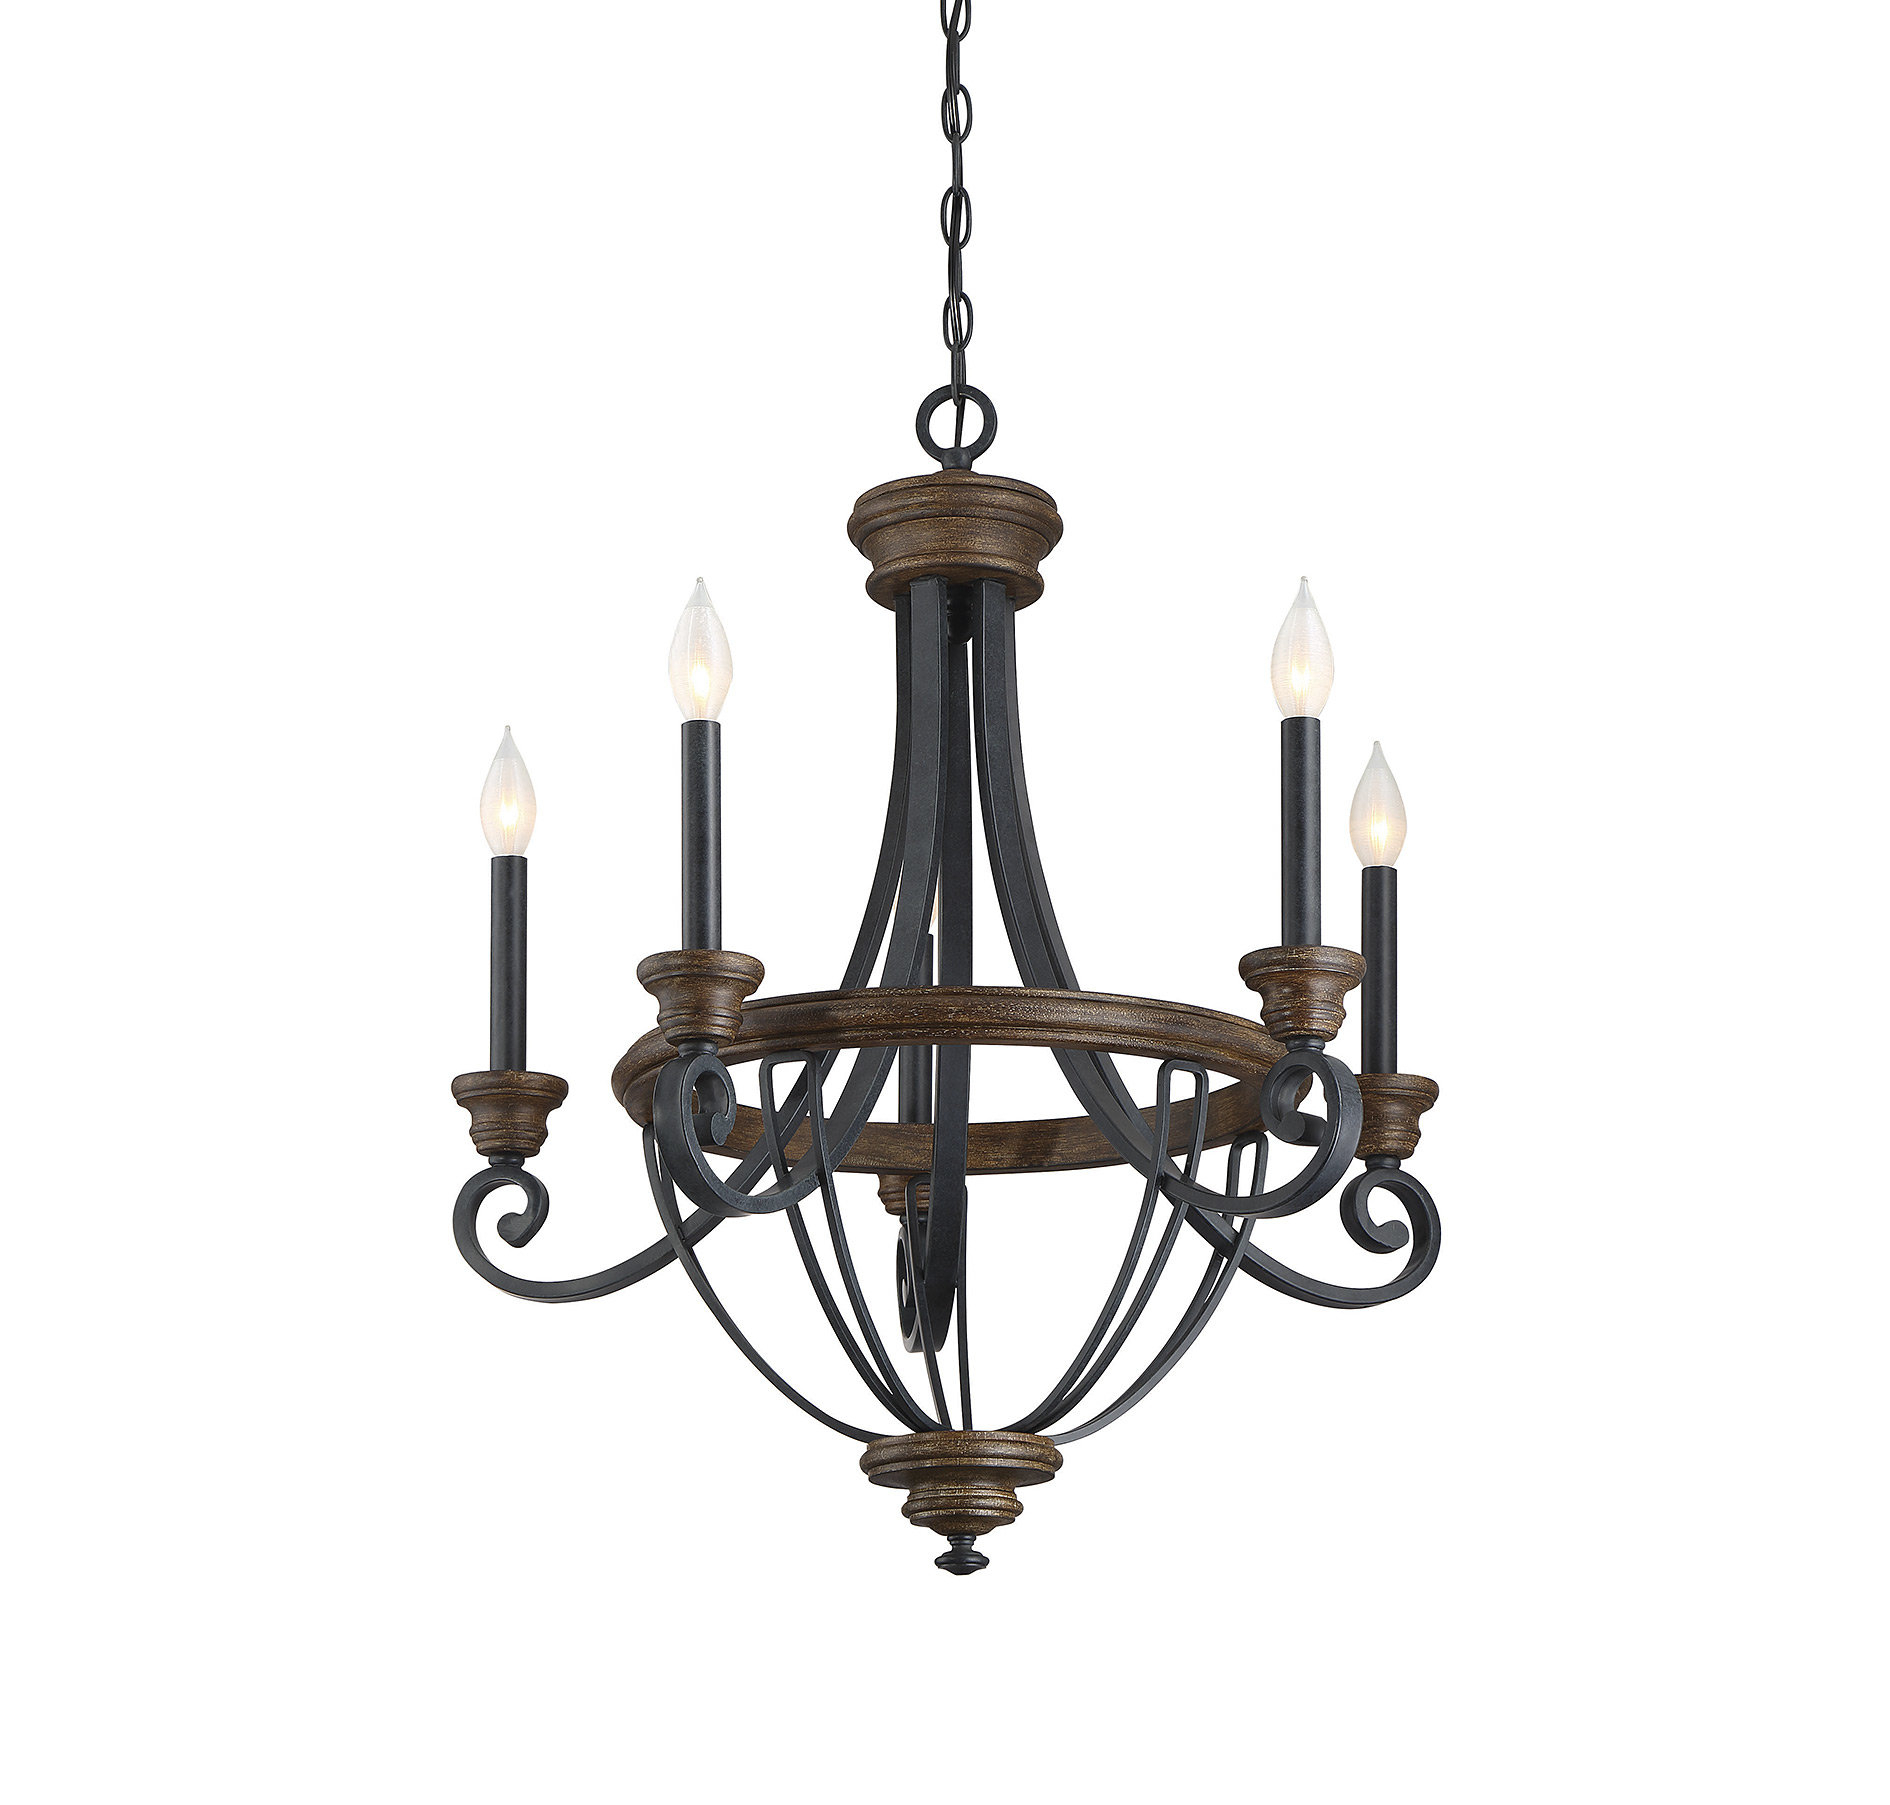 Nanteuil 5-Light Empire Chandelier for Camilla 9-Light Candle Style Chandeliers (Image 22 of 30)